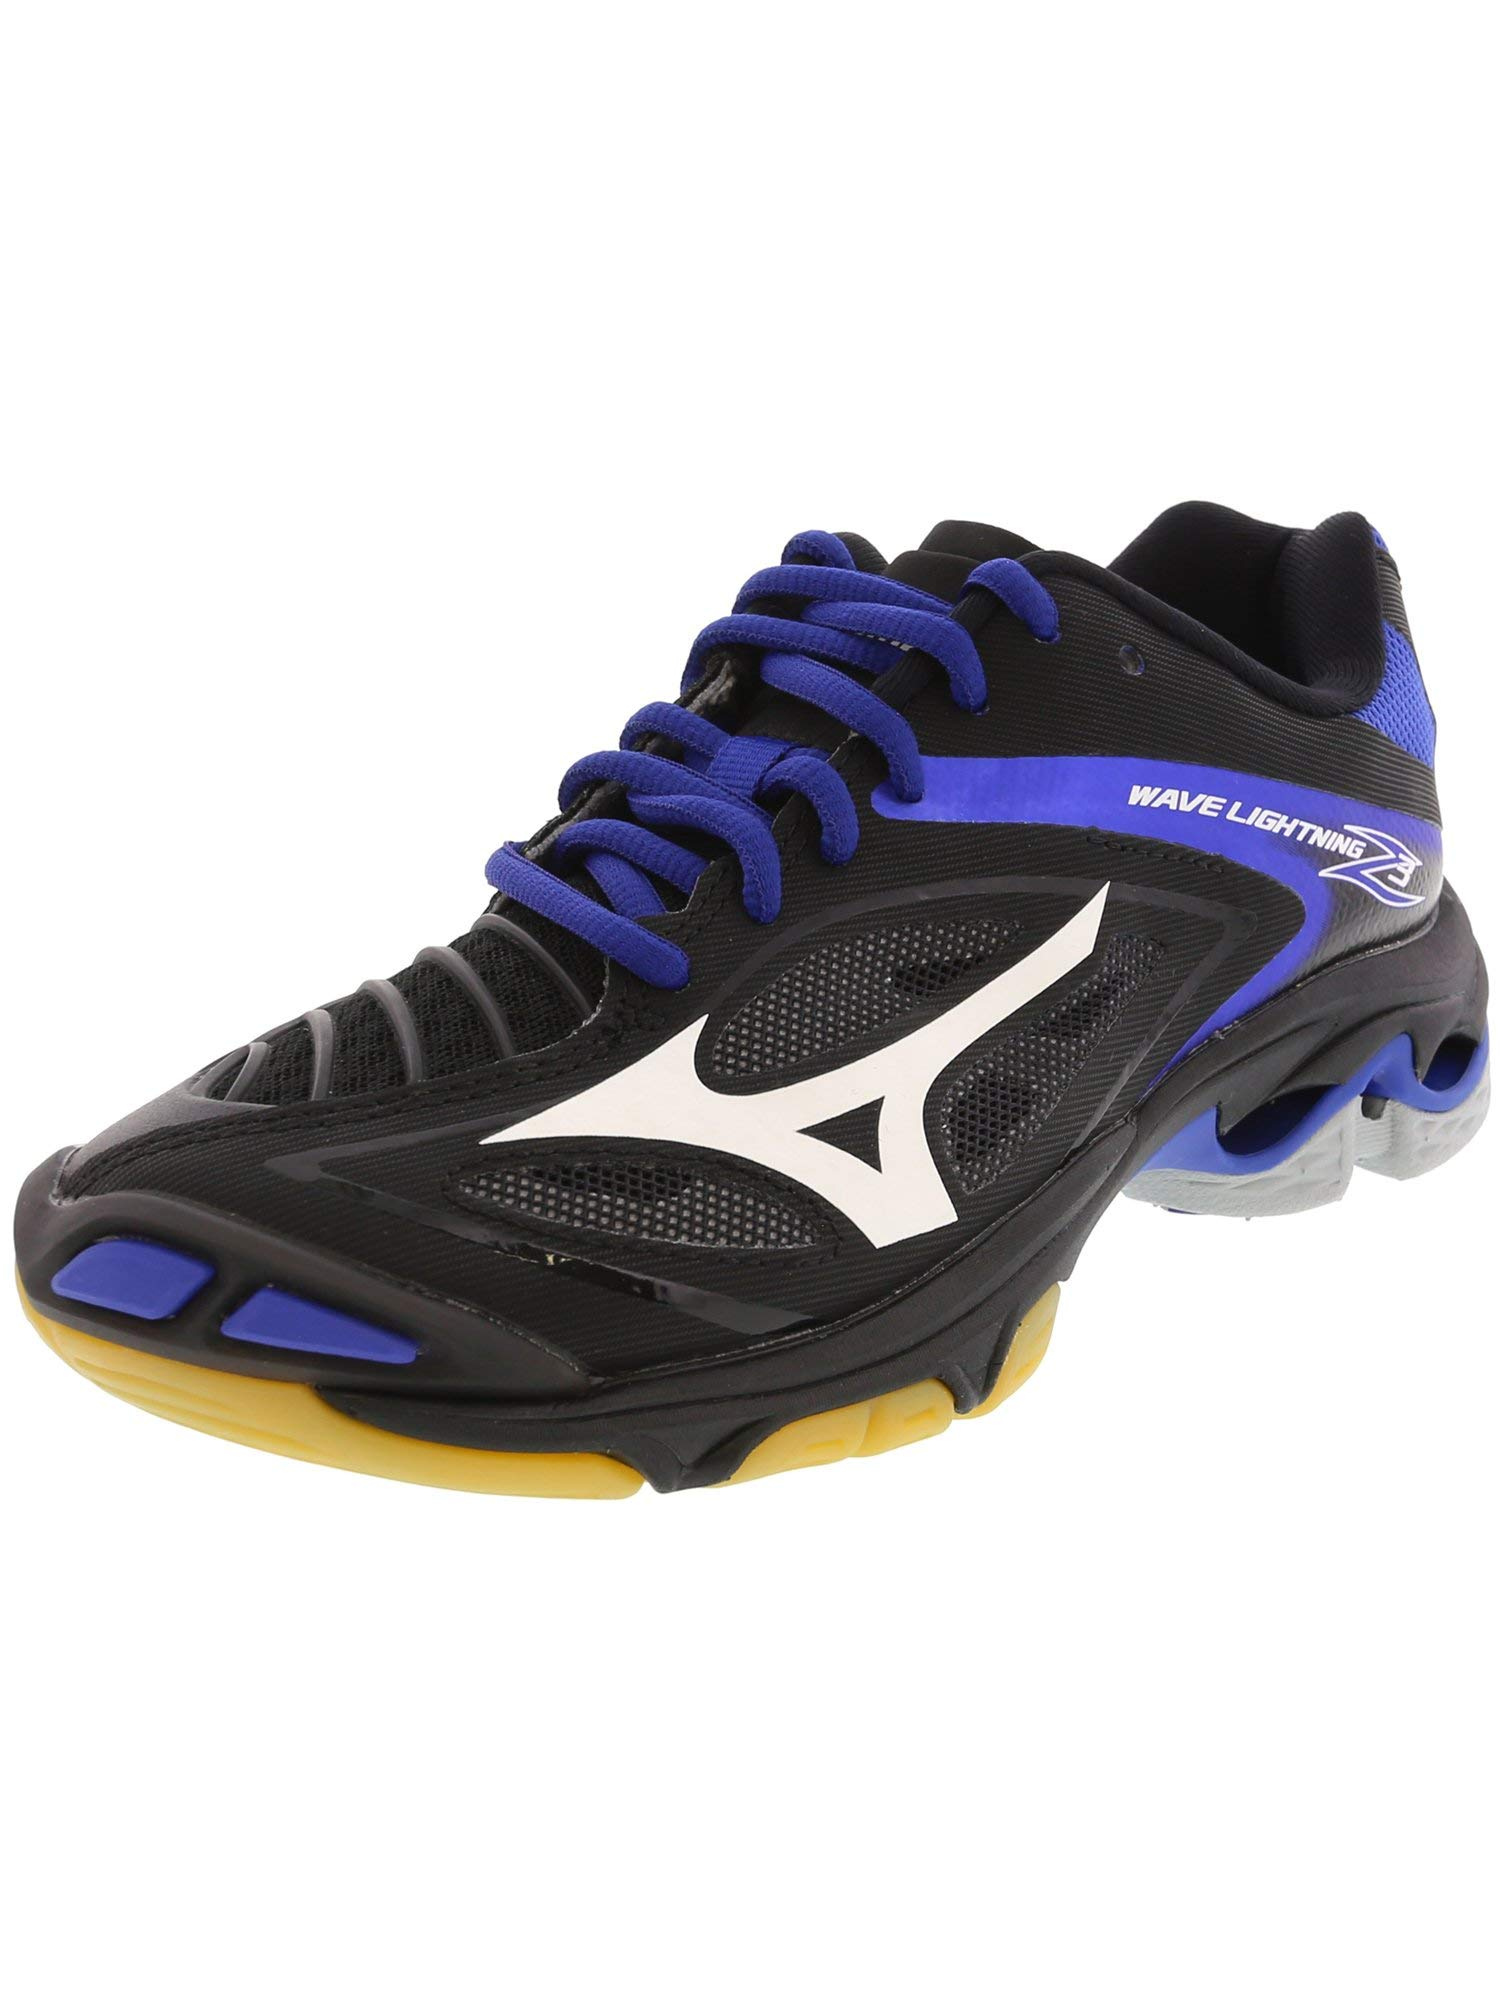 Mizuno Women's Wave Lighting Z3 Volleyball Shoe,Black/Royal,6 B US